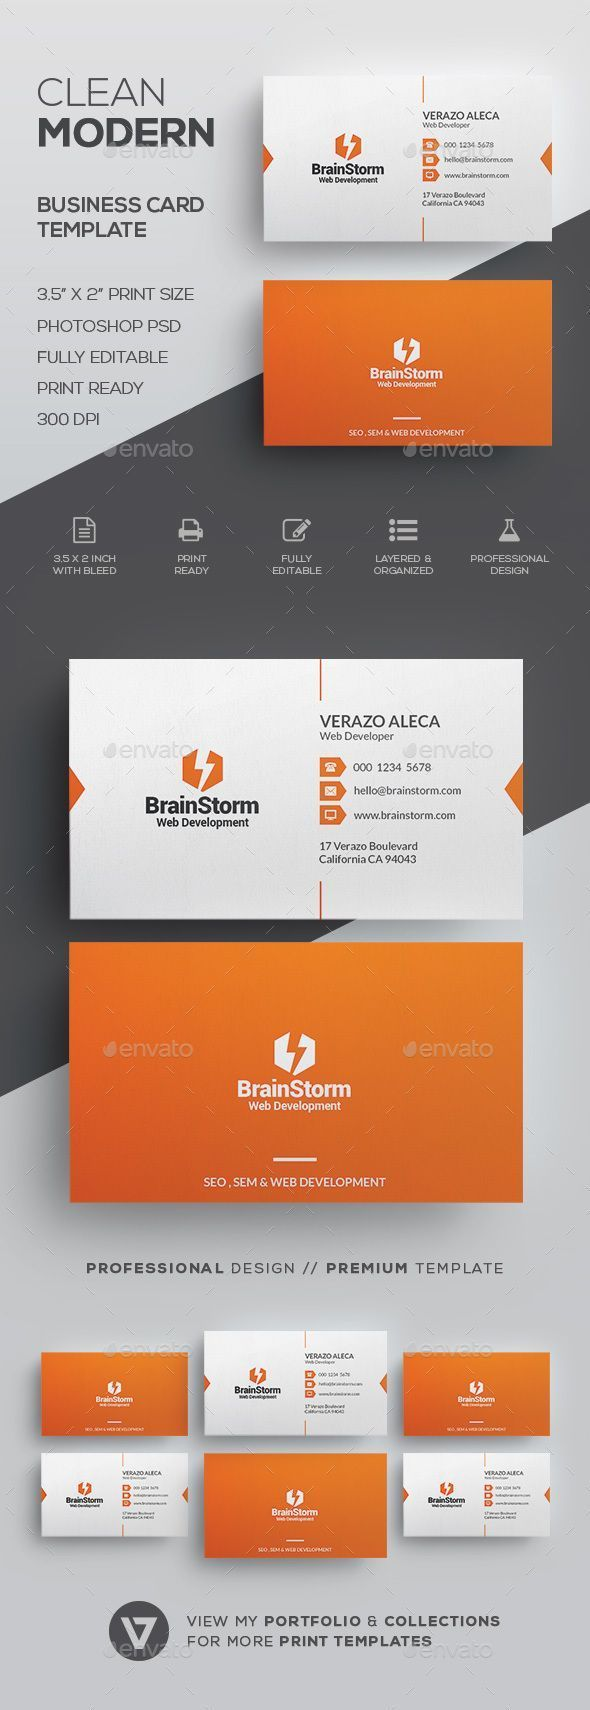 Clean Business Card Template - Corporate Business Cards (scheduled #business #cards #templates #sample #designs #design #cards